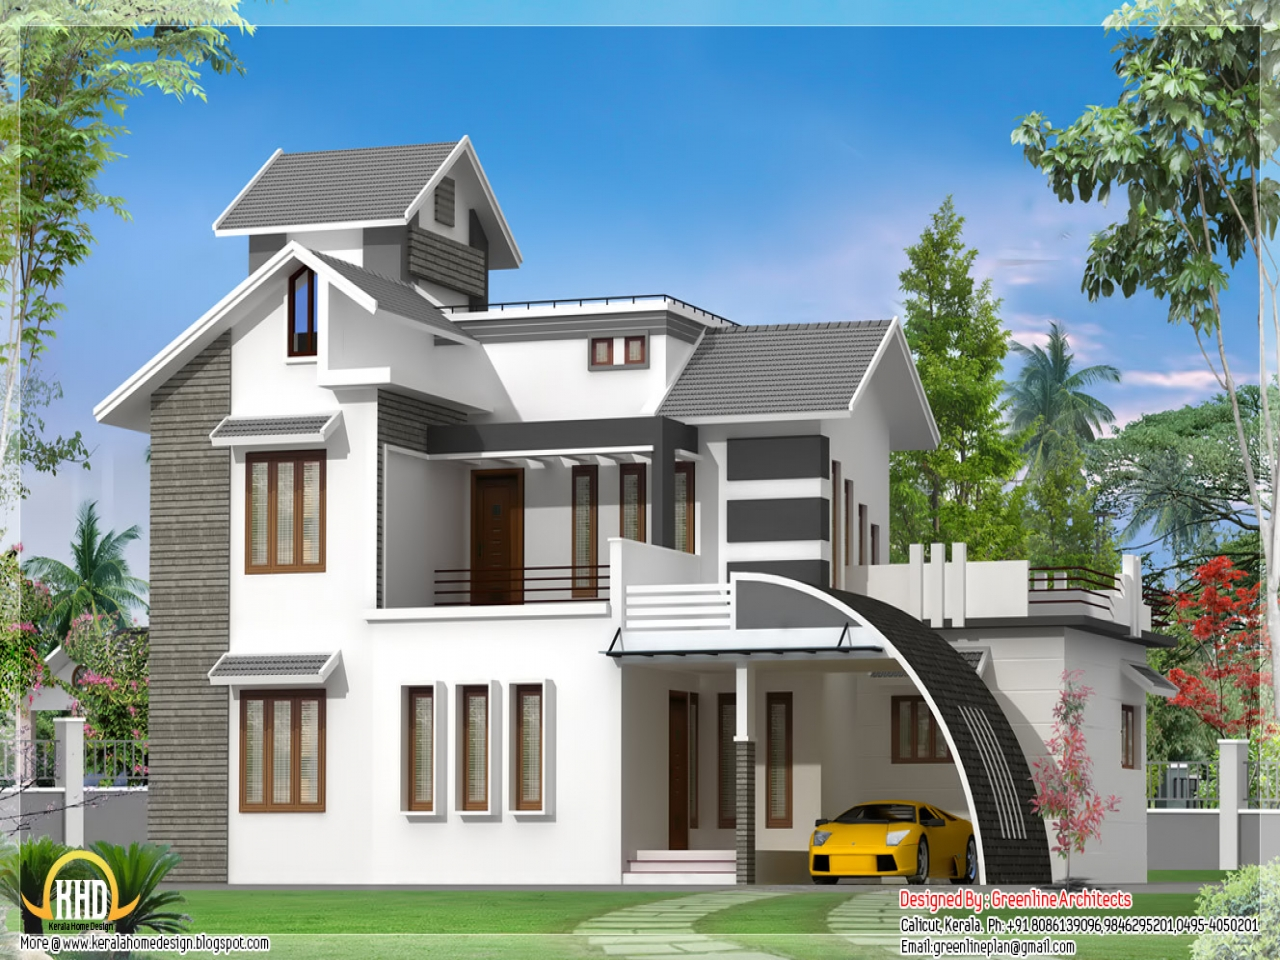 Indian style house design view front house designs house for Home front design indian style